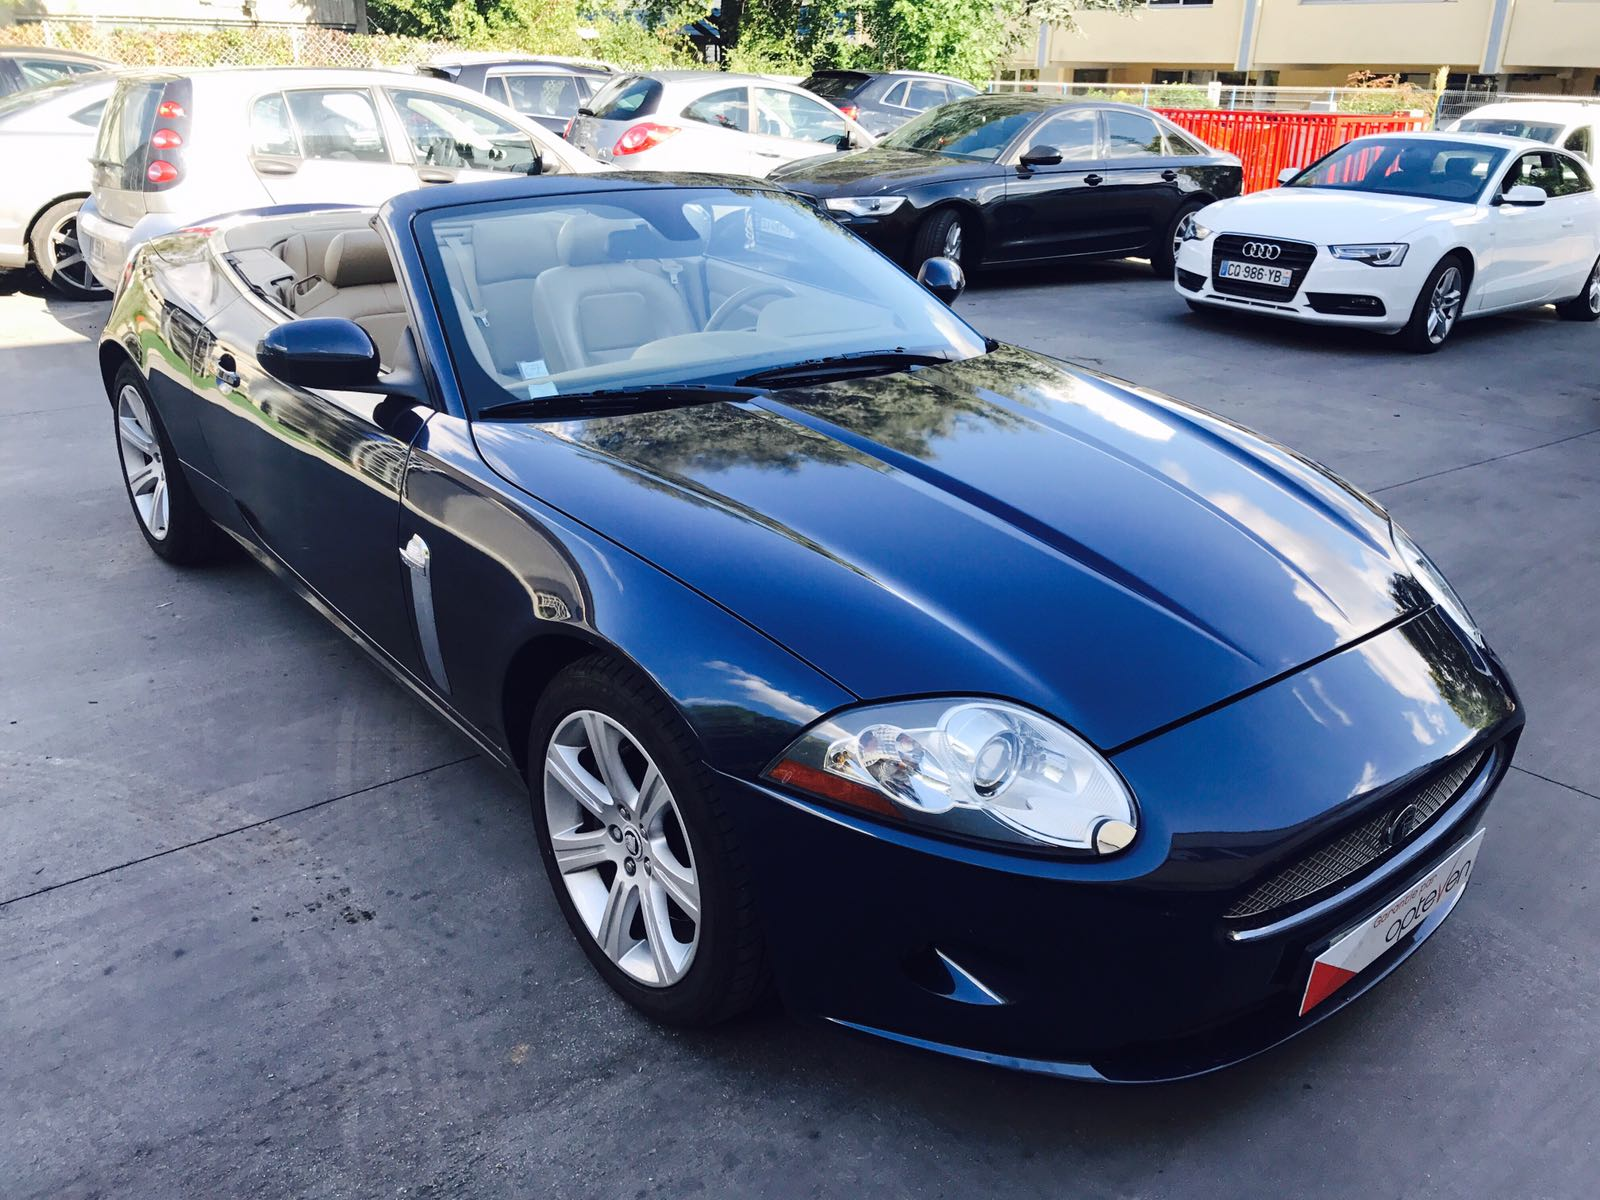 voiture jaguar xk 3 6l v8 258cv occasion essence 2010 62500 km 33990 neuilly sur. Black Bedroom Furniture Sets. Home Design Ideas